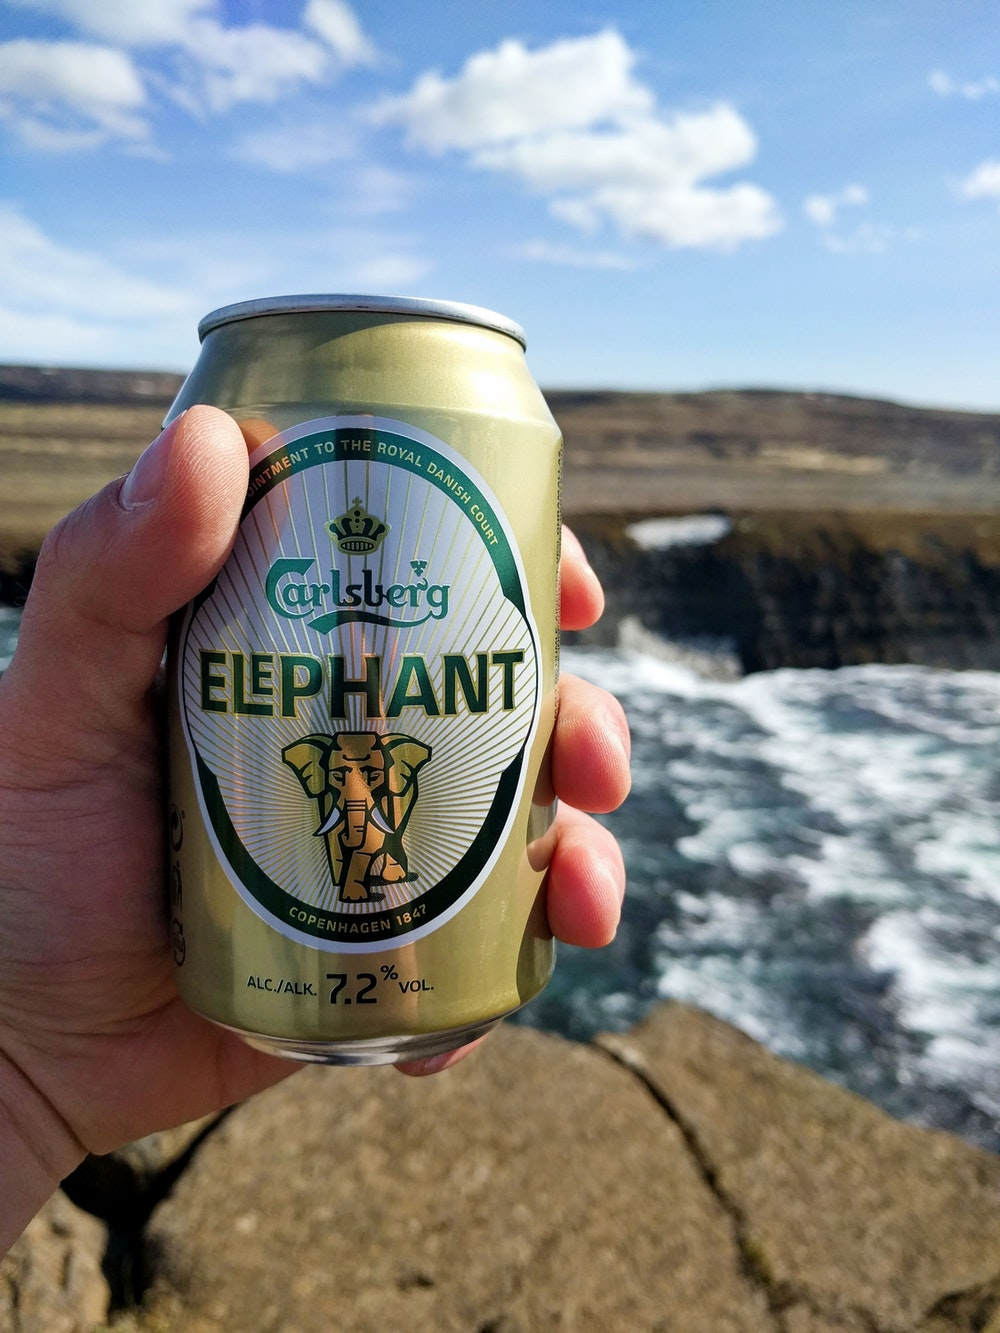 Elephant beer can